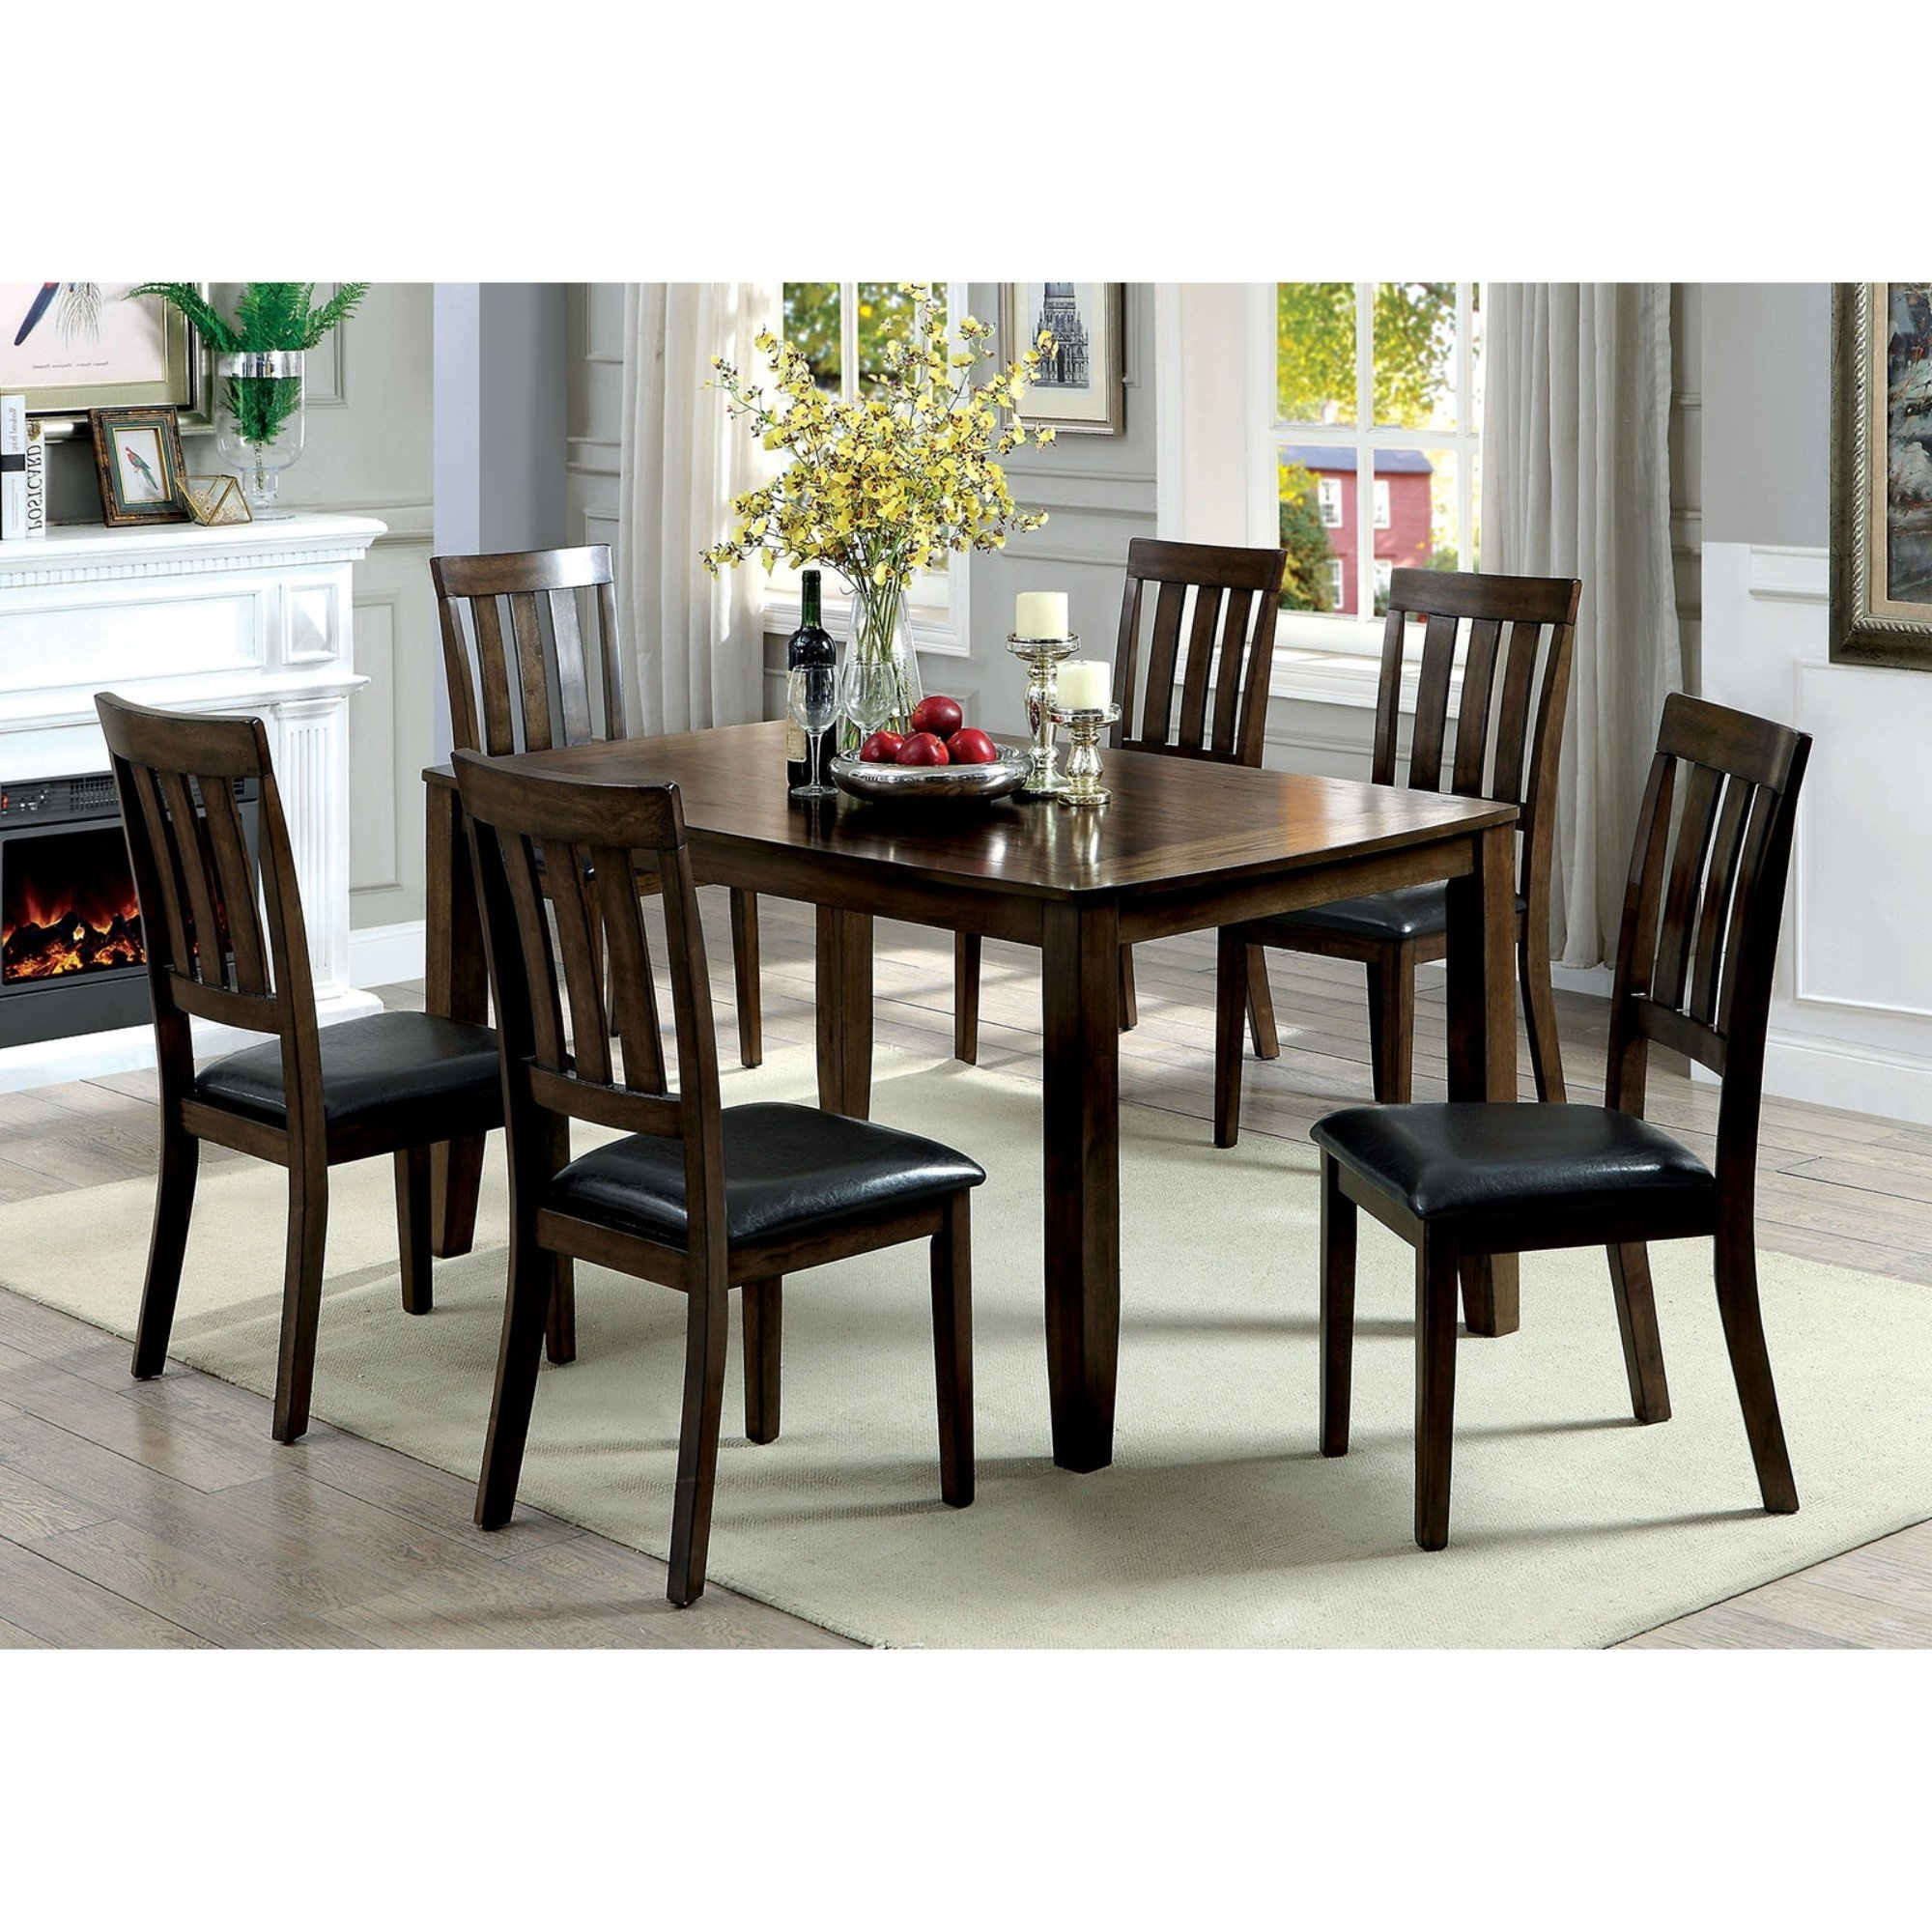 Most Recent Candice Ii 7 Piece Extension Rectangle Dining Sets Intended For Millwood Pines Devon Wooden 7 Piece Counter Height Dining Table Set (Gallery 3 of 25)